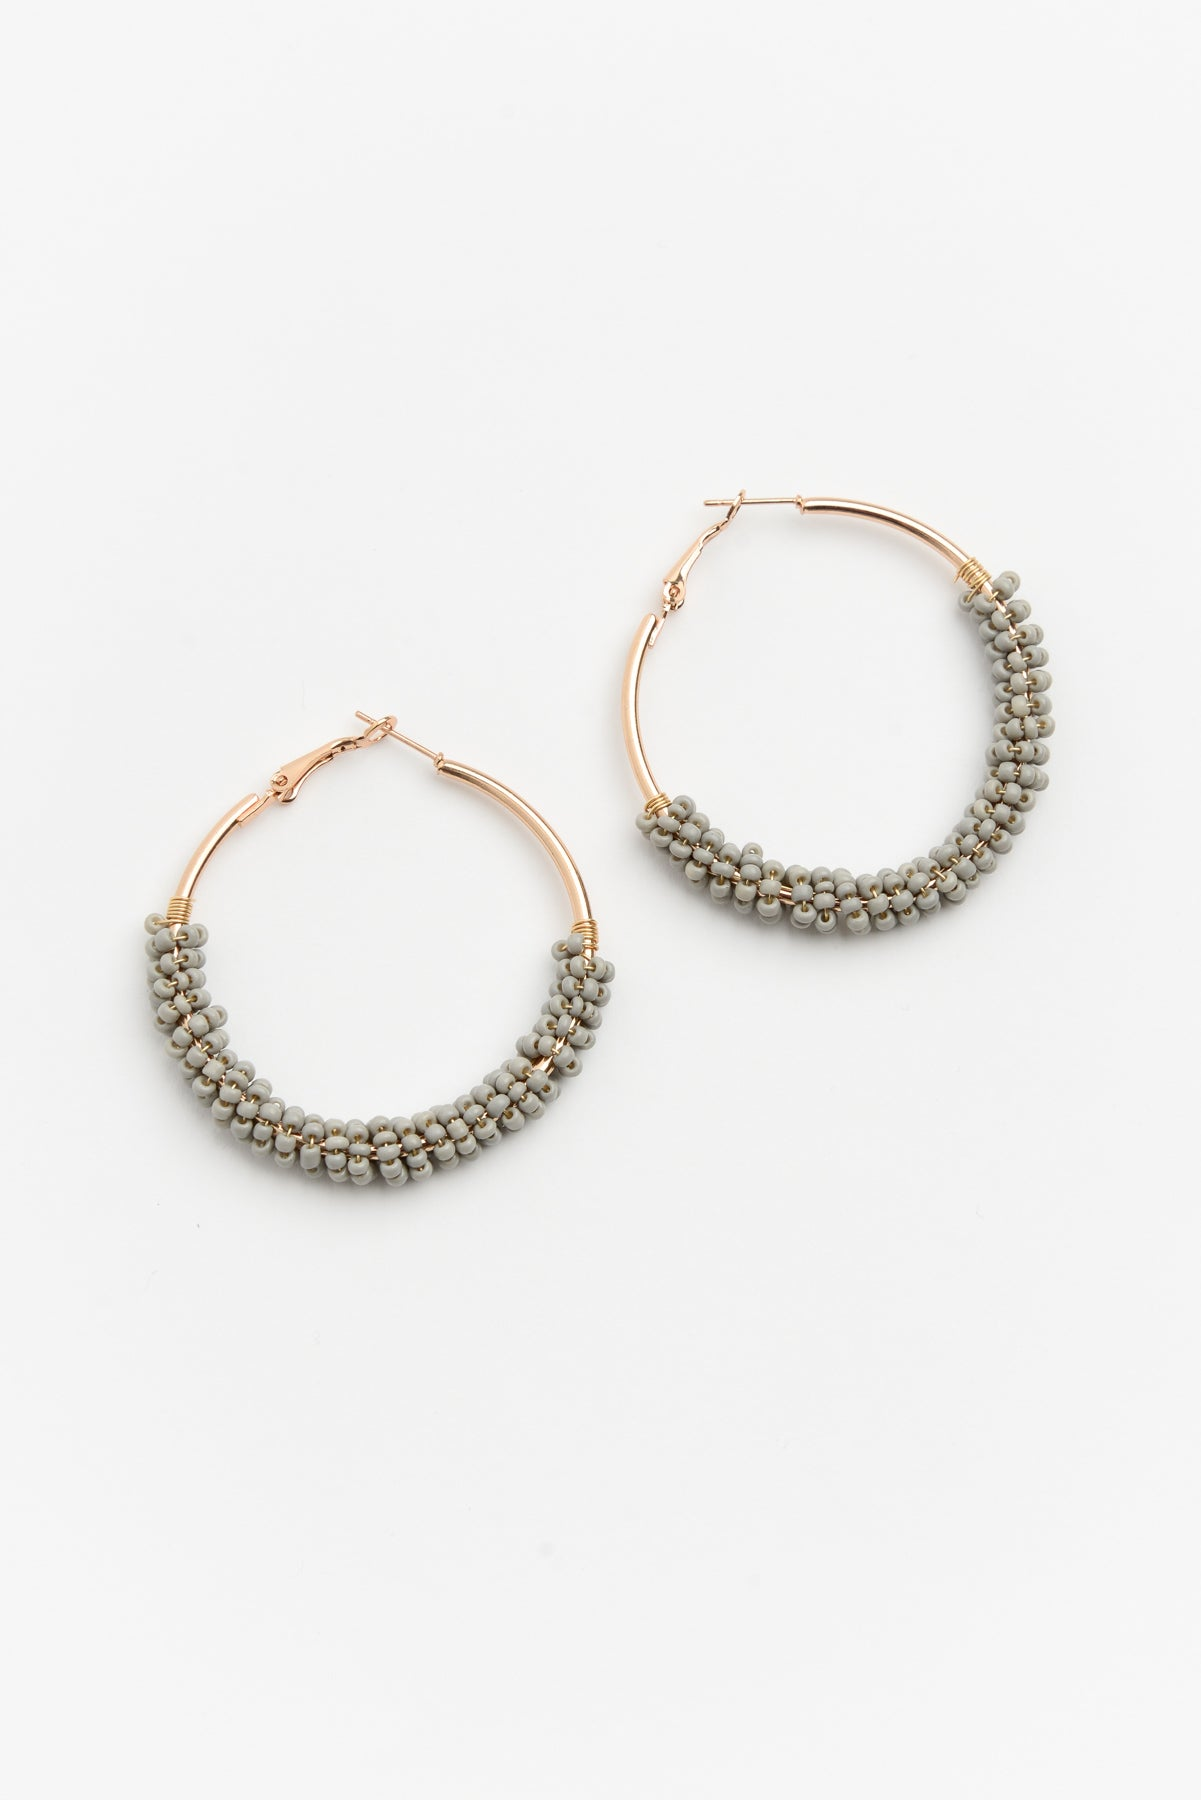 Isla Grey Beaded Hoop Earring - Blue Bungalow